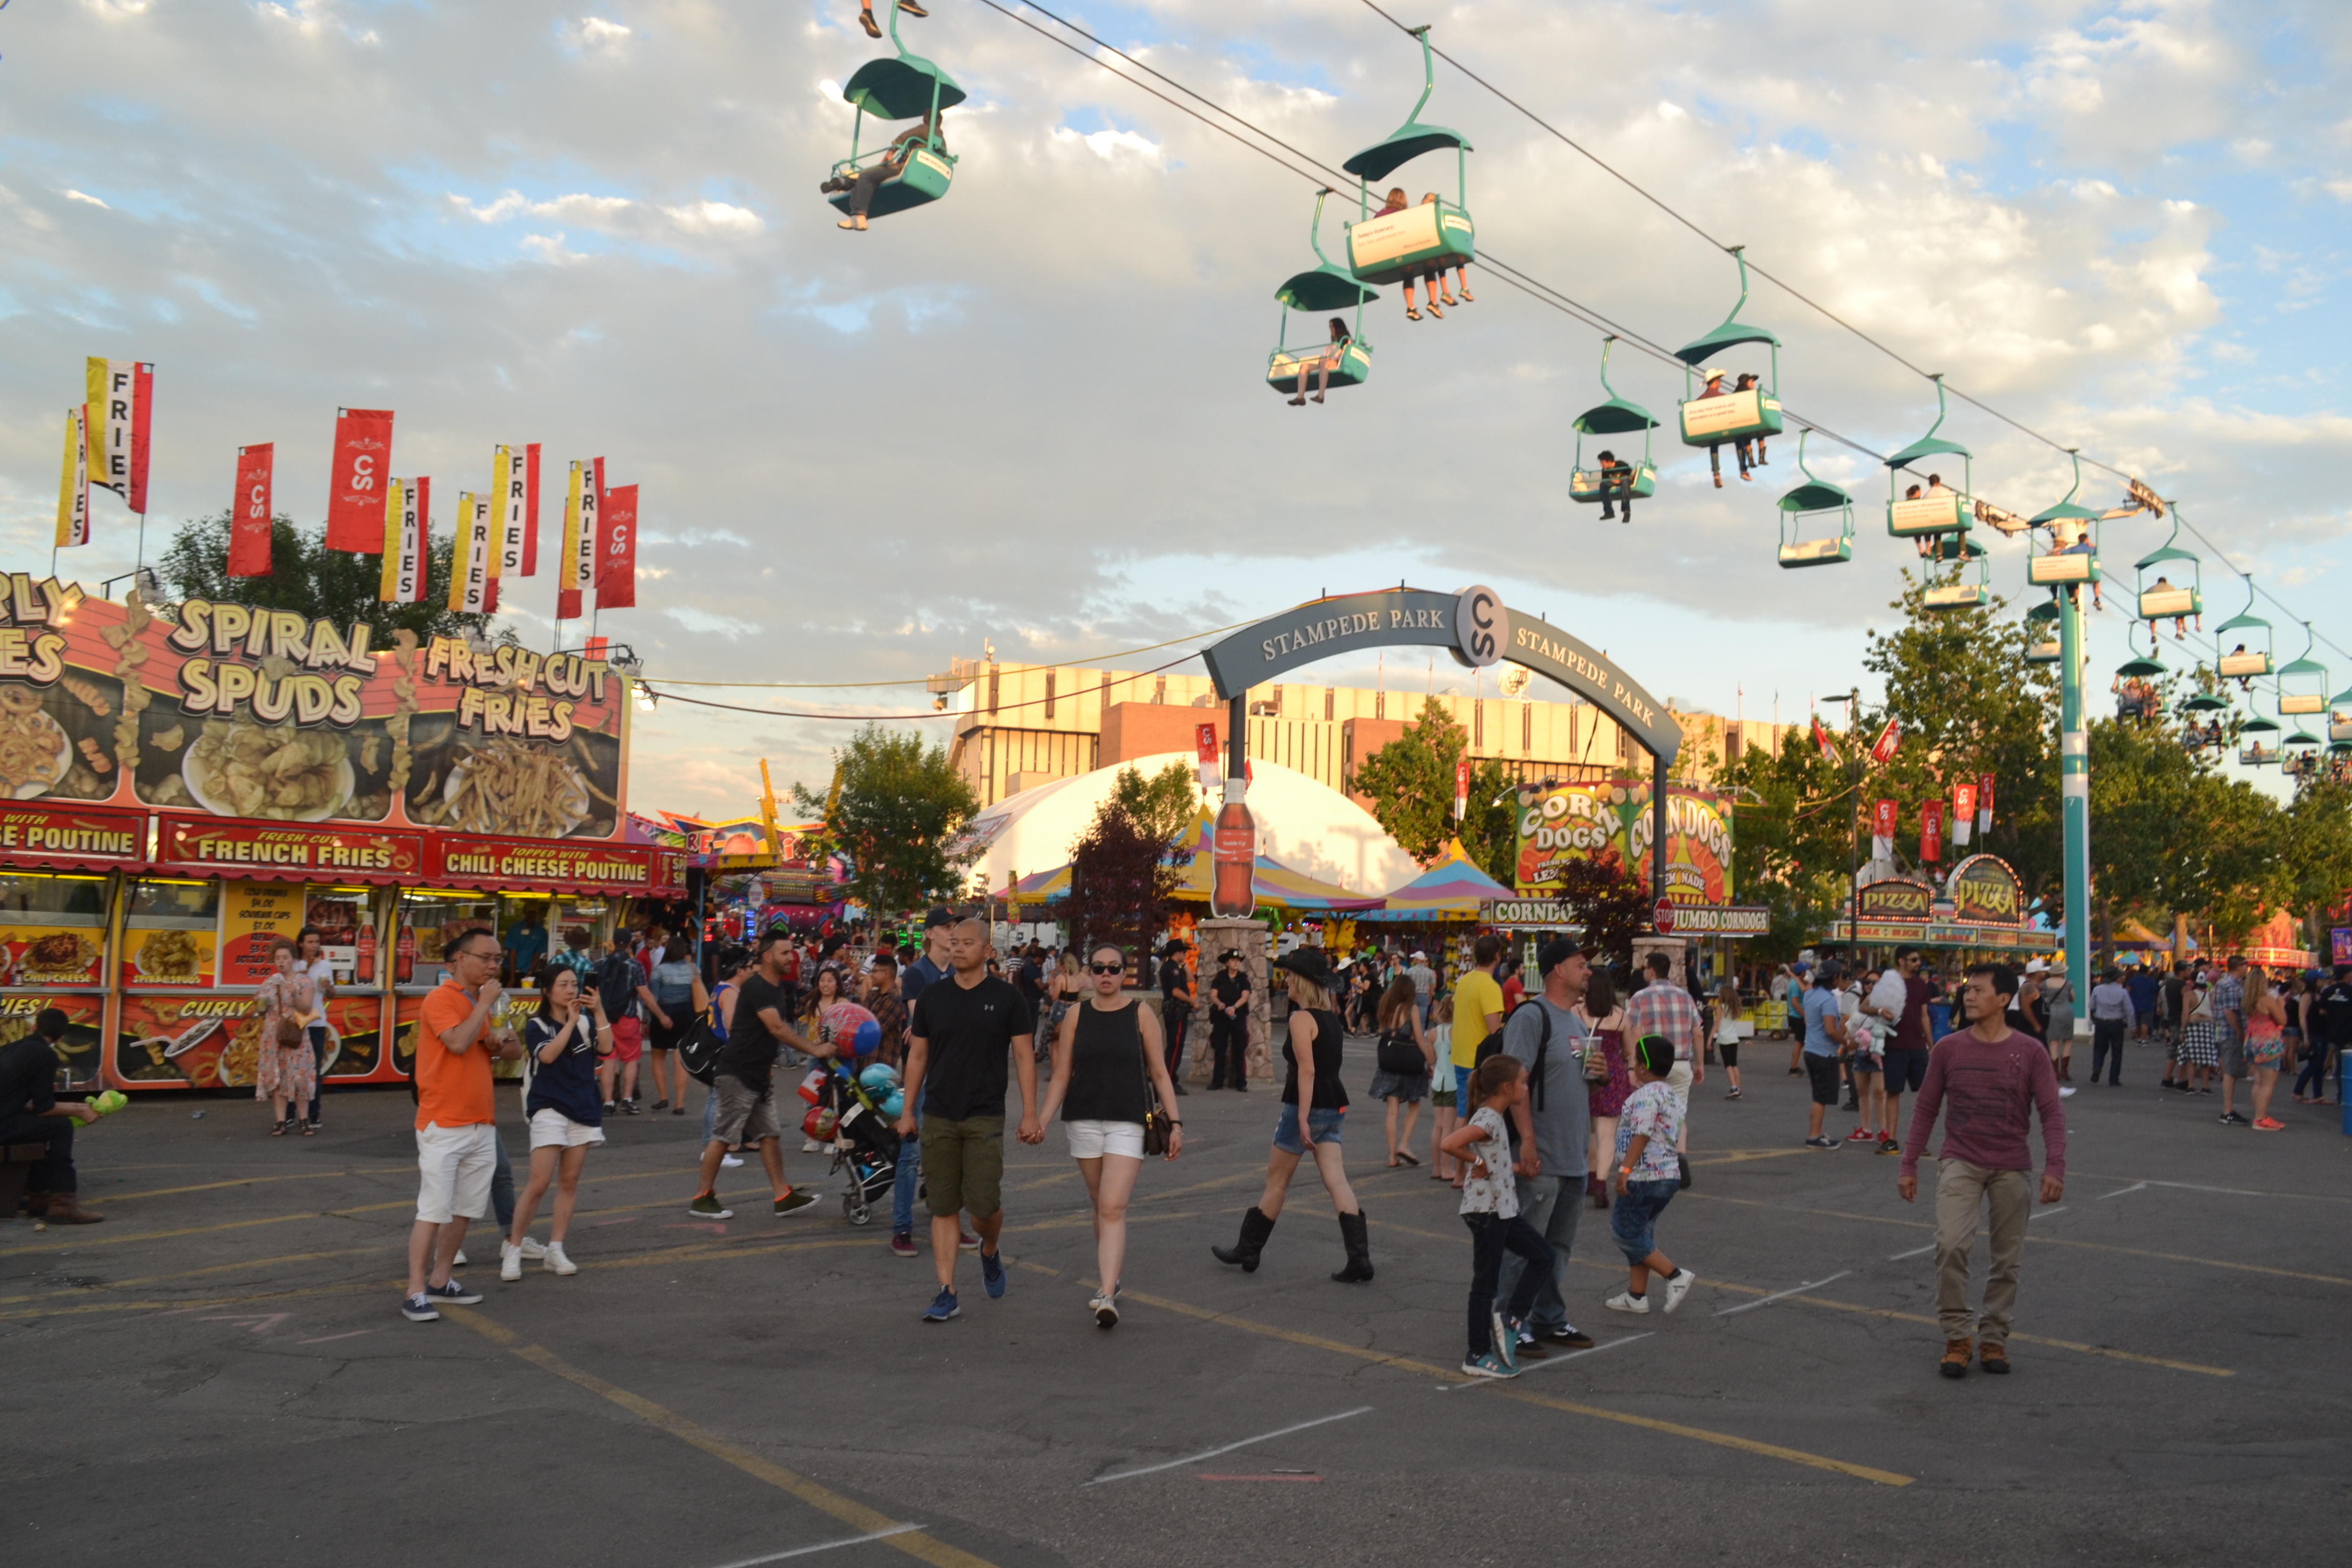 File:2017 Calgary Stampede - Day One (13) (35401783260).jpg - Wikimedia Commons